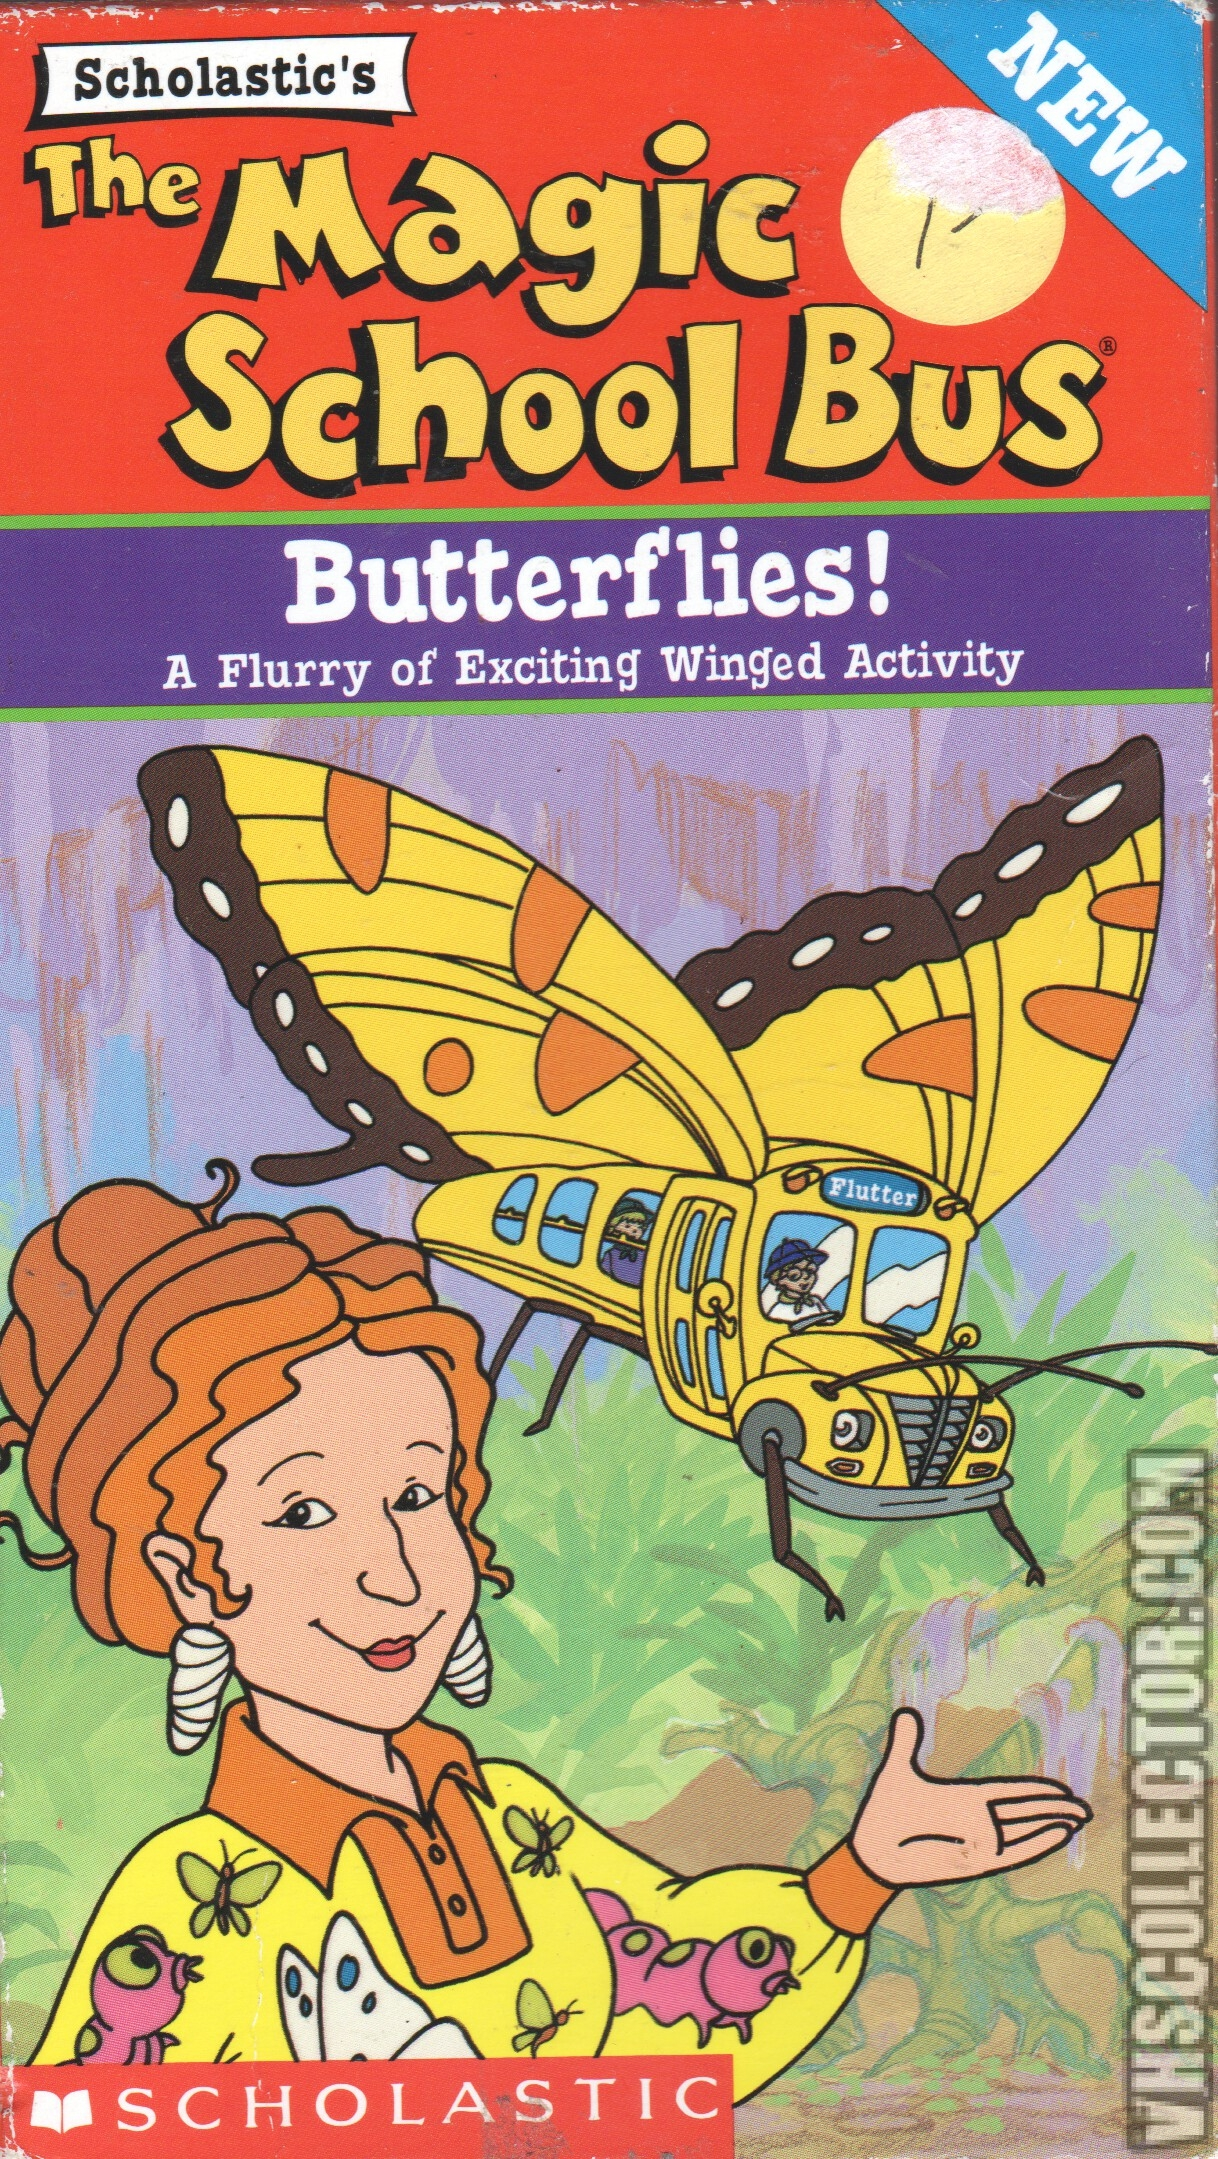 The Magic School Bus Butterflies